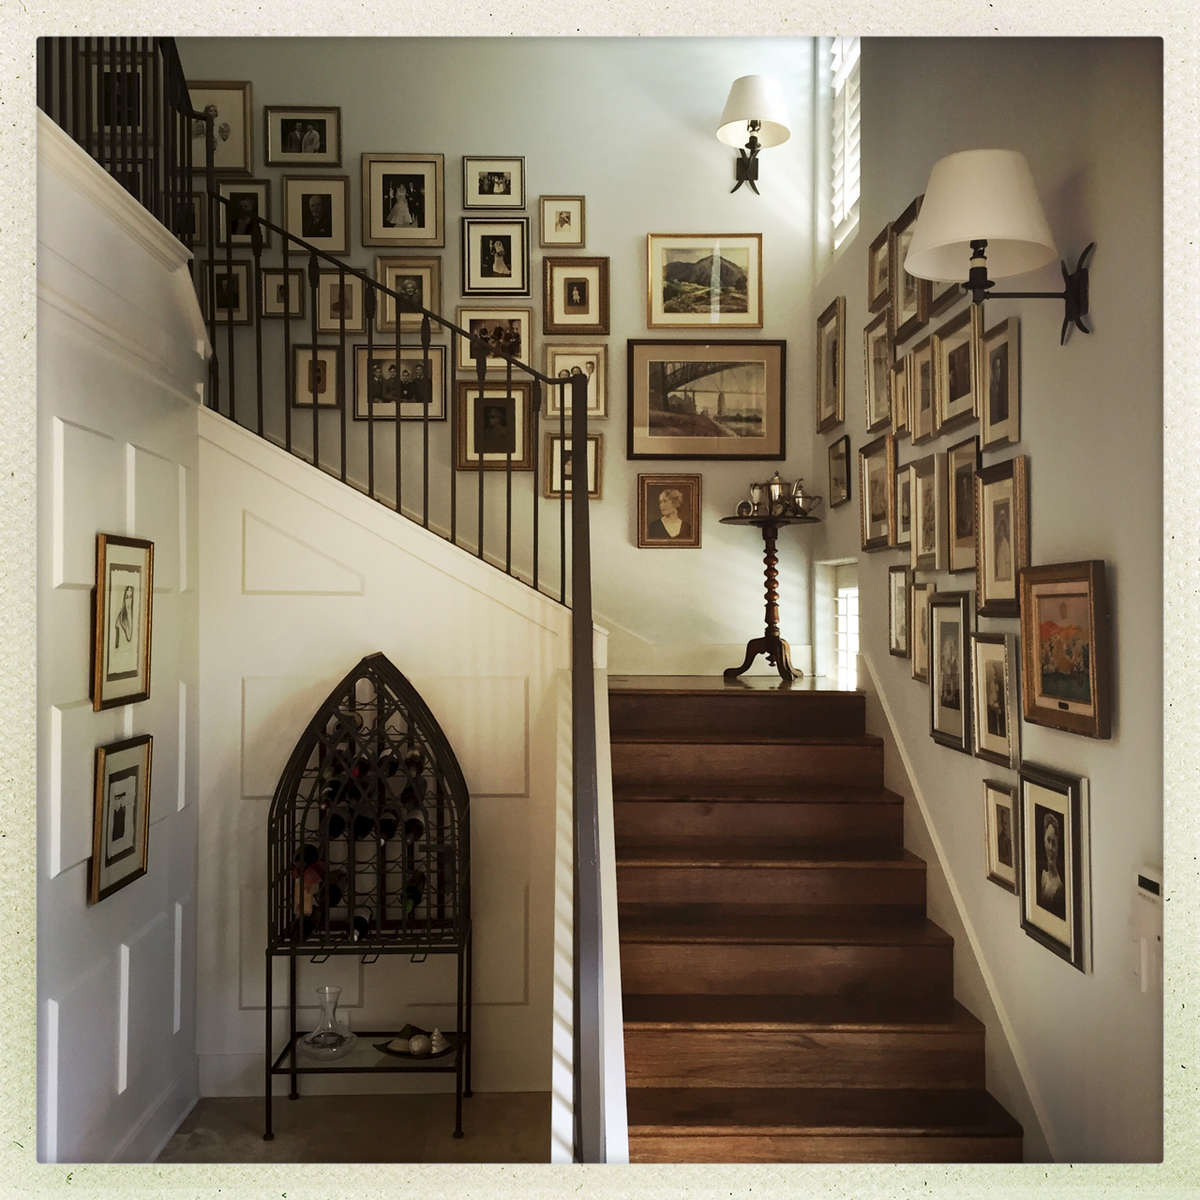 A new stairwell, but instant character with classic details and lots of family history.